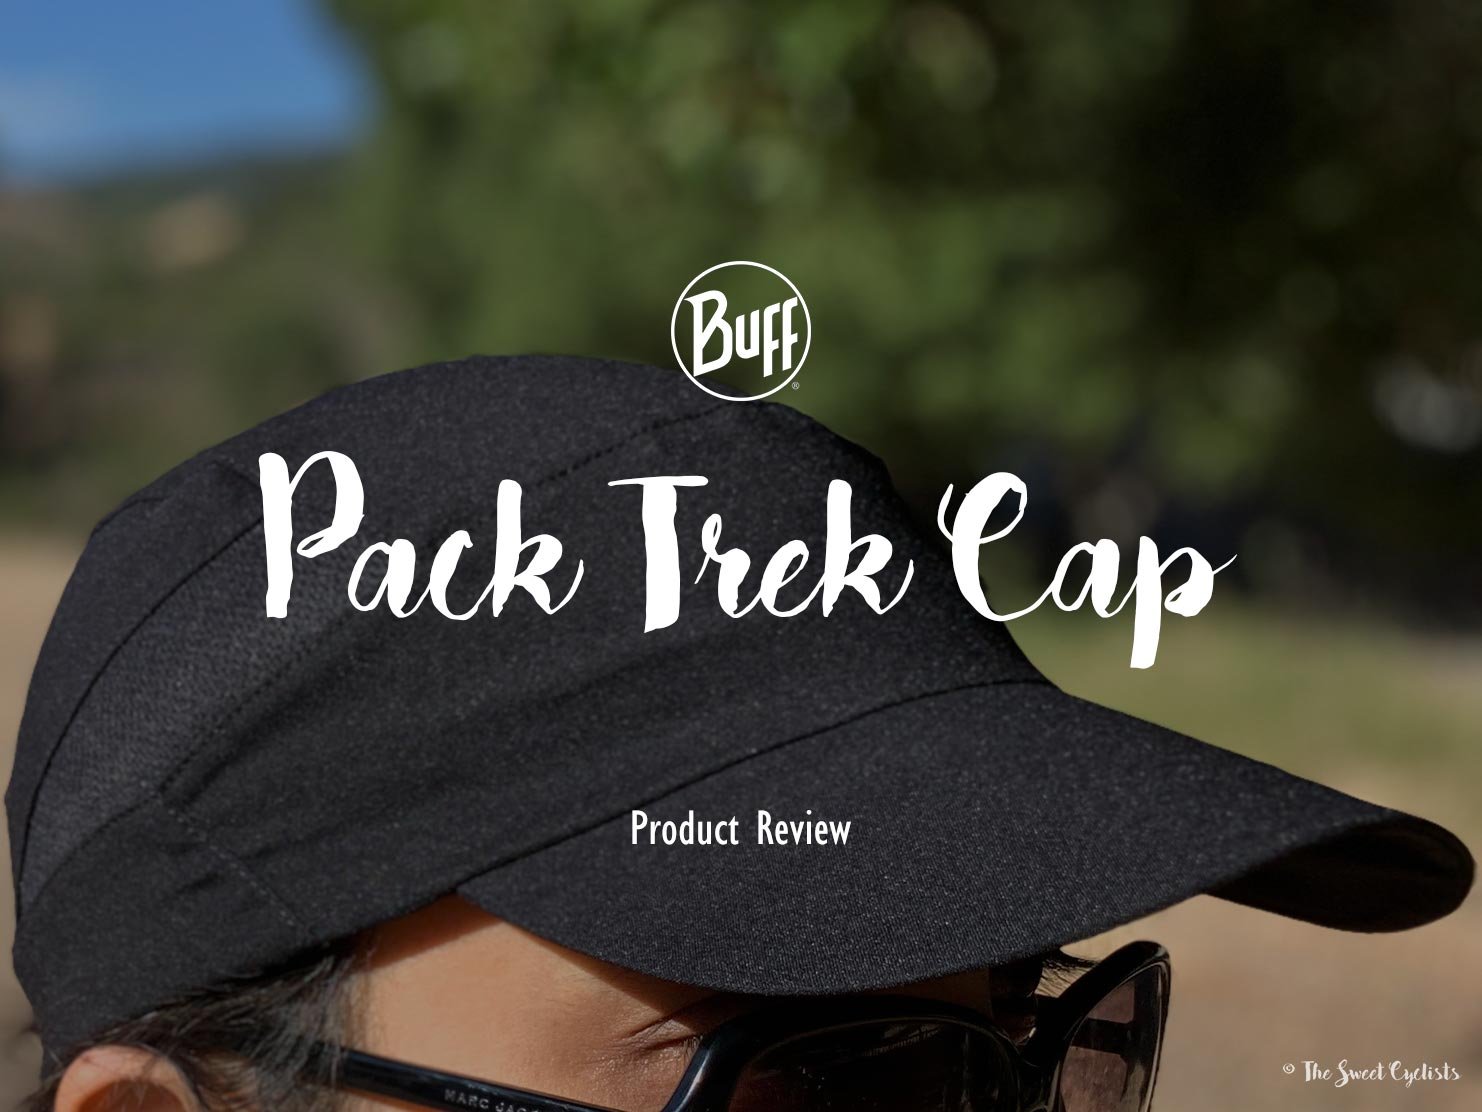 A Hat that fits in your Pocket!